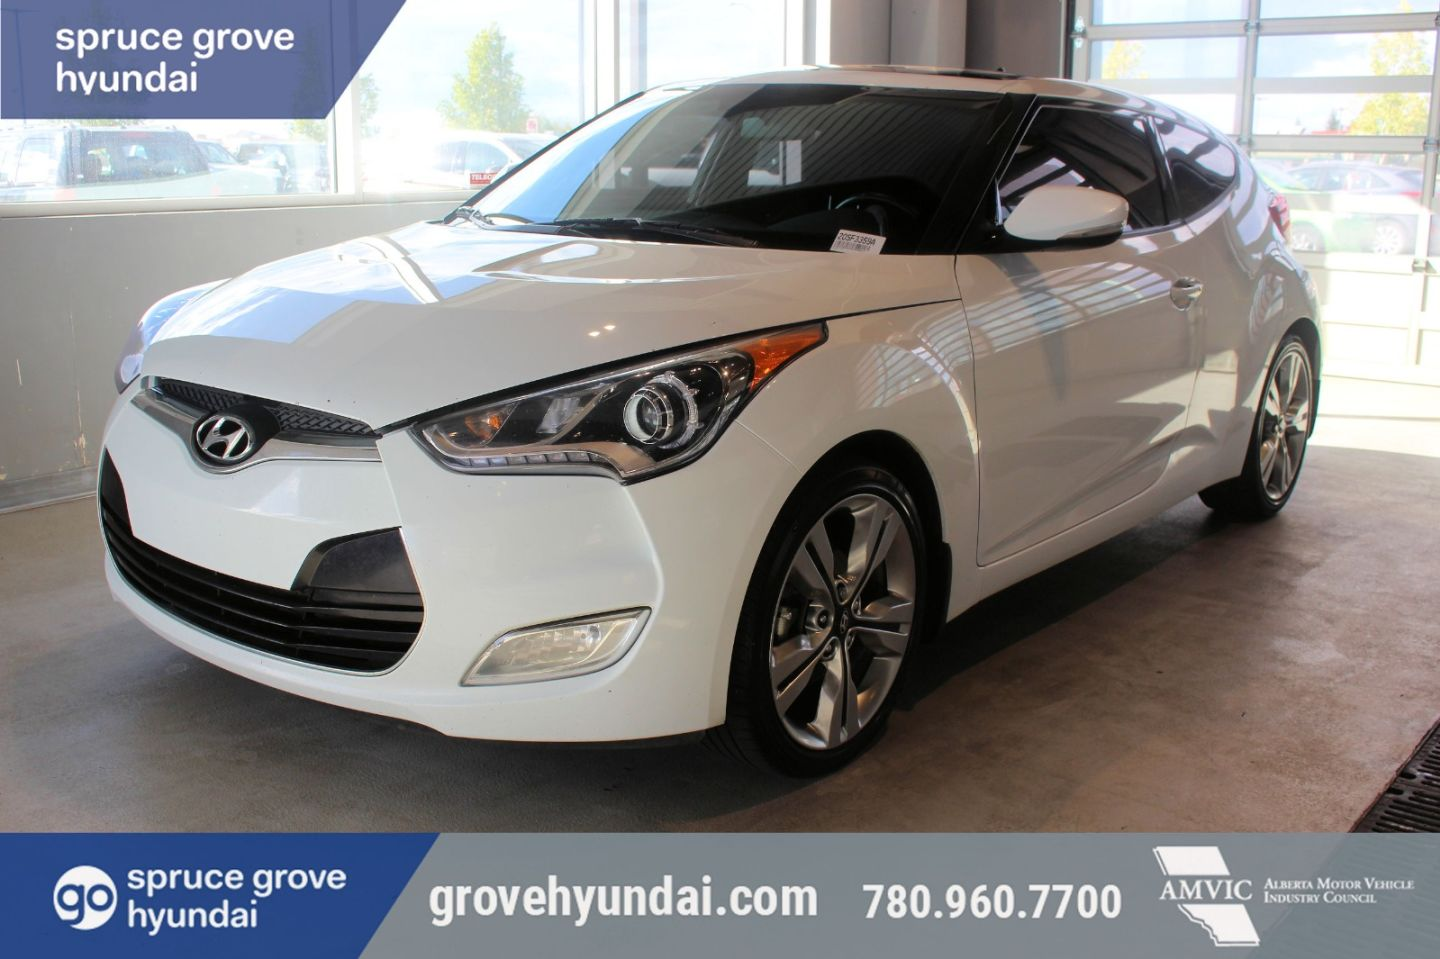 2017 Hyundai Veloster Tech for sale in Spruce Grove, Alberta